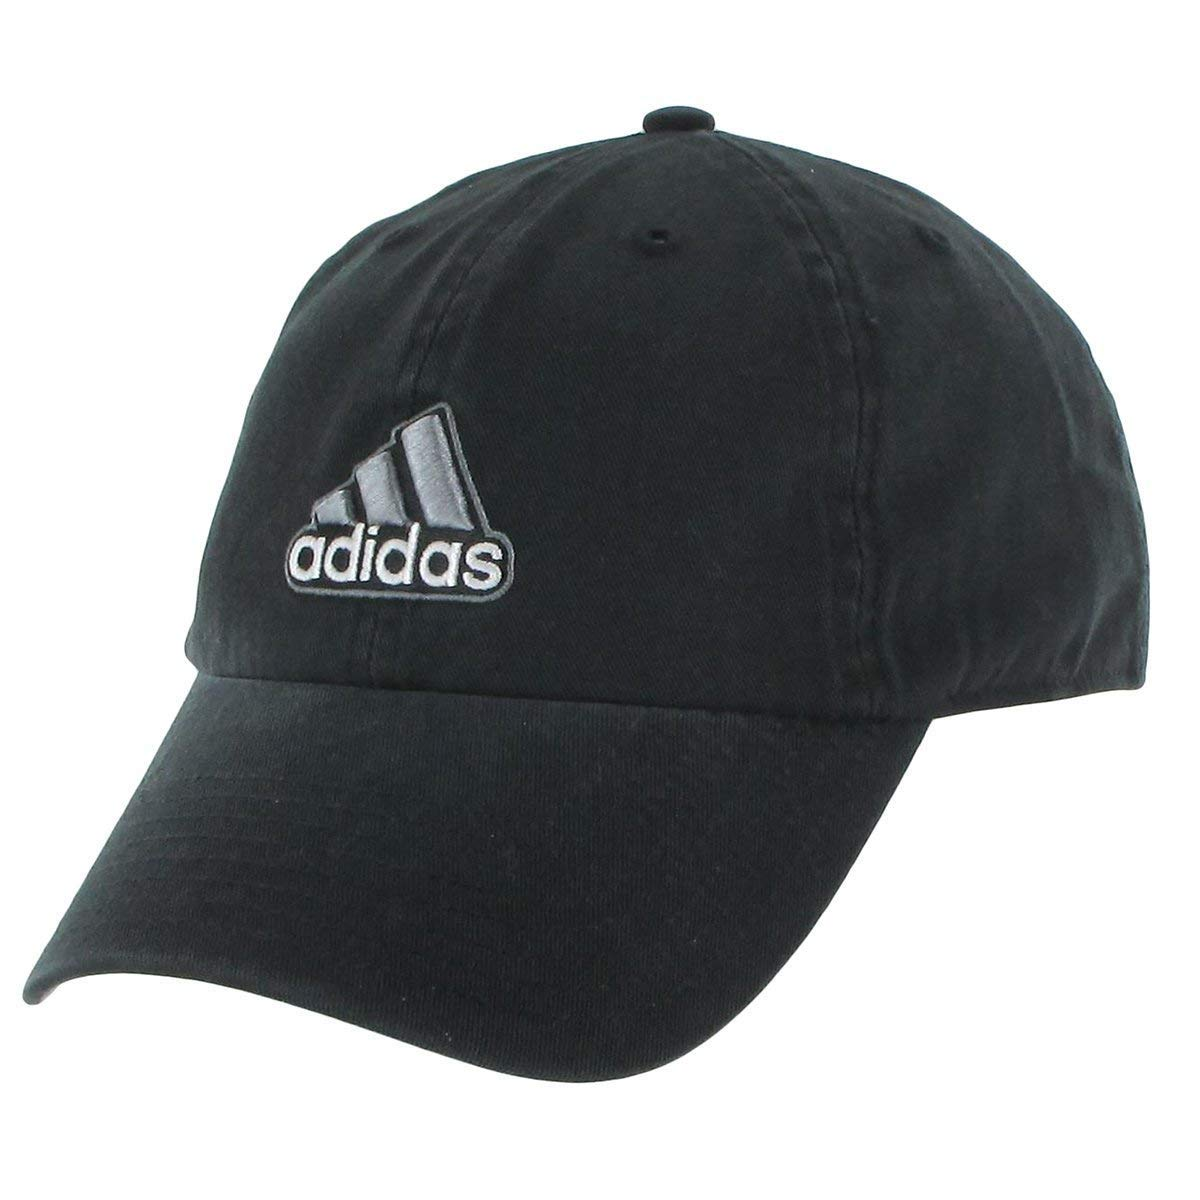 adidas Ultimate Relaxed Adjustable Cap (Black Grey) Twill